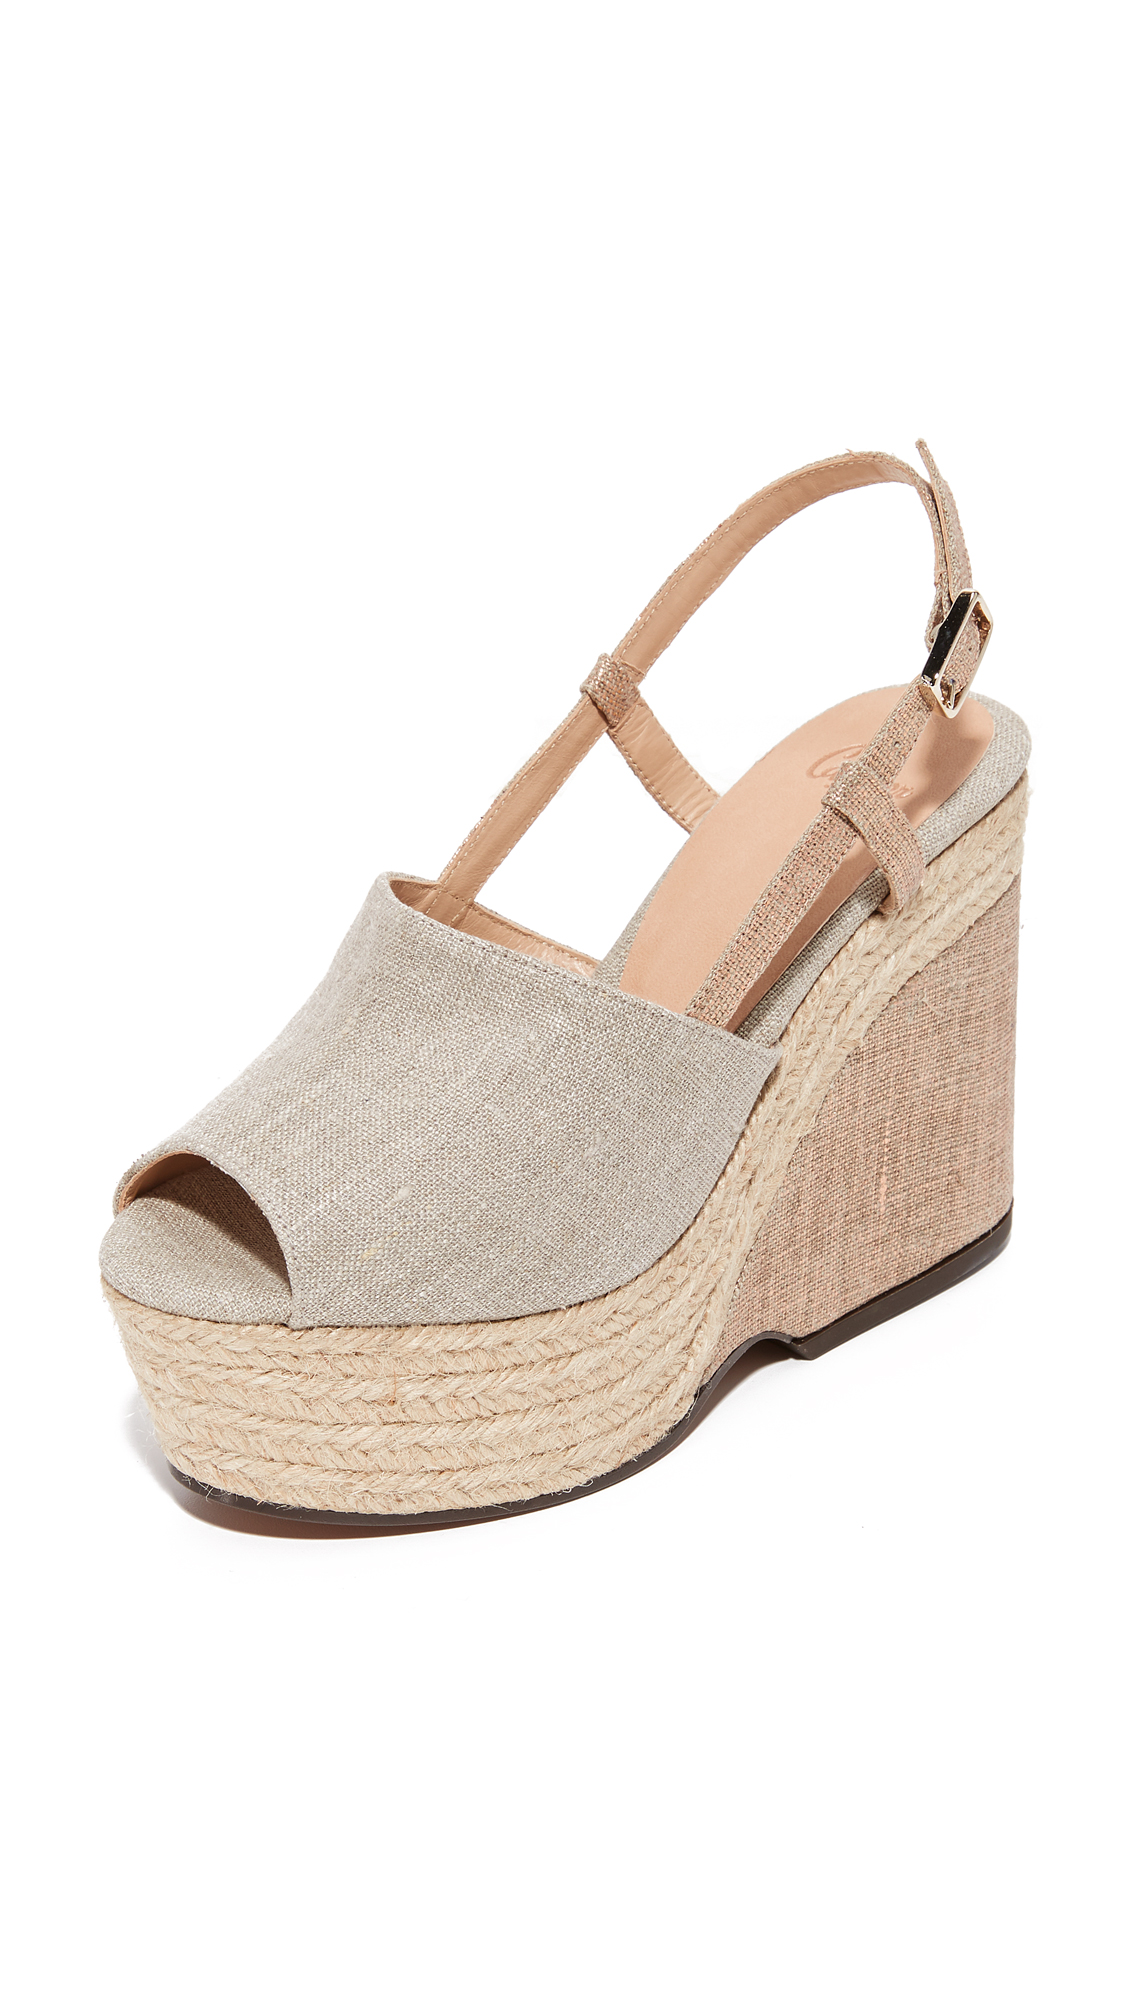 Castaner Sweet Days Platform Sandals - Piedra